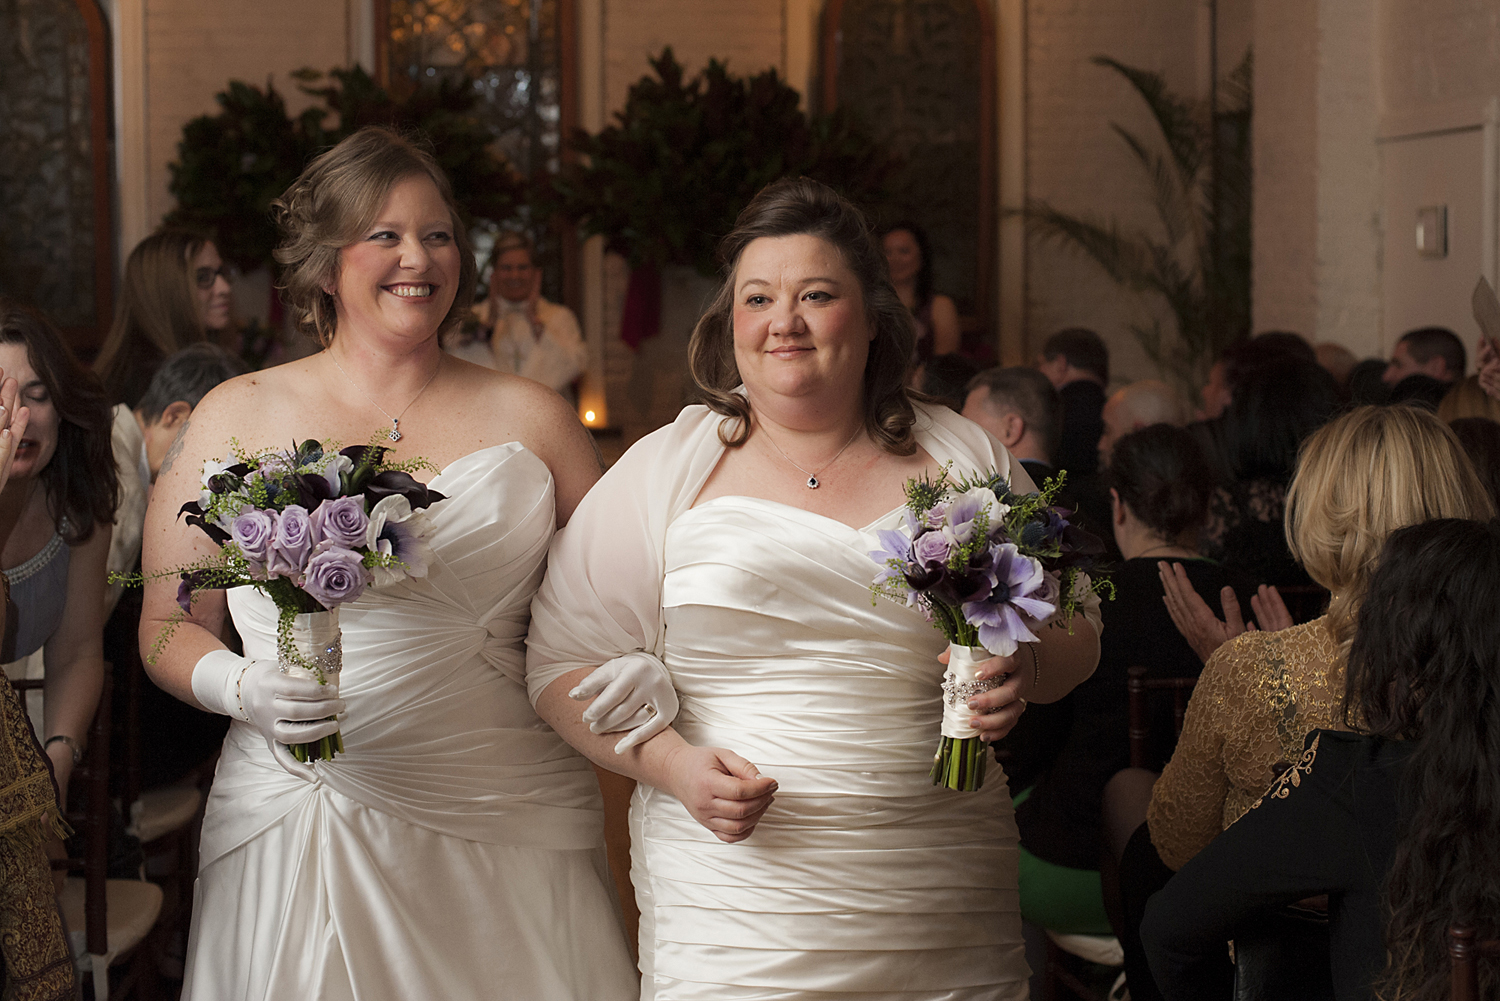 Brides walk down aisle after their wedding ceremony at Alger House. Gay NYC wedding photographer